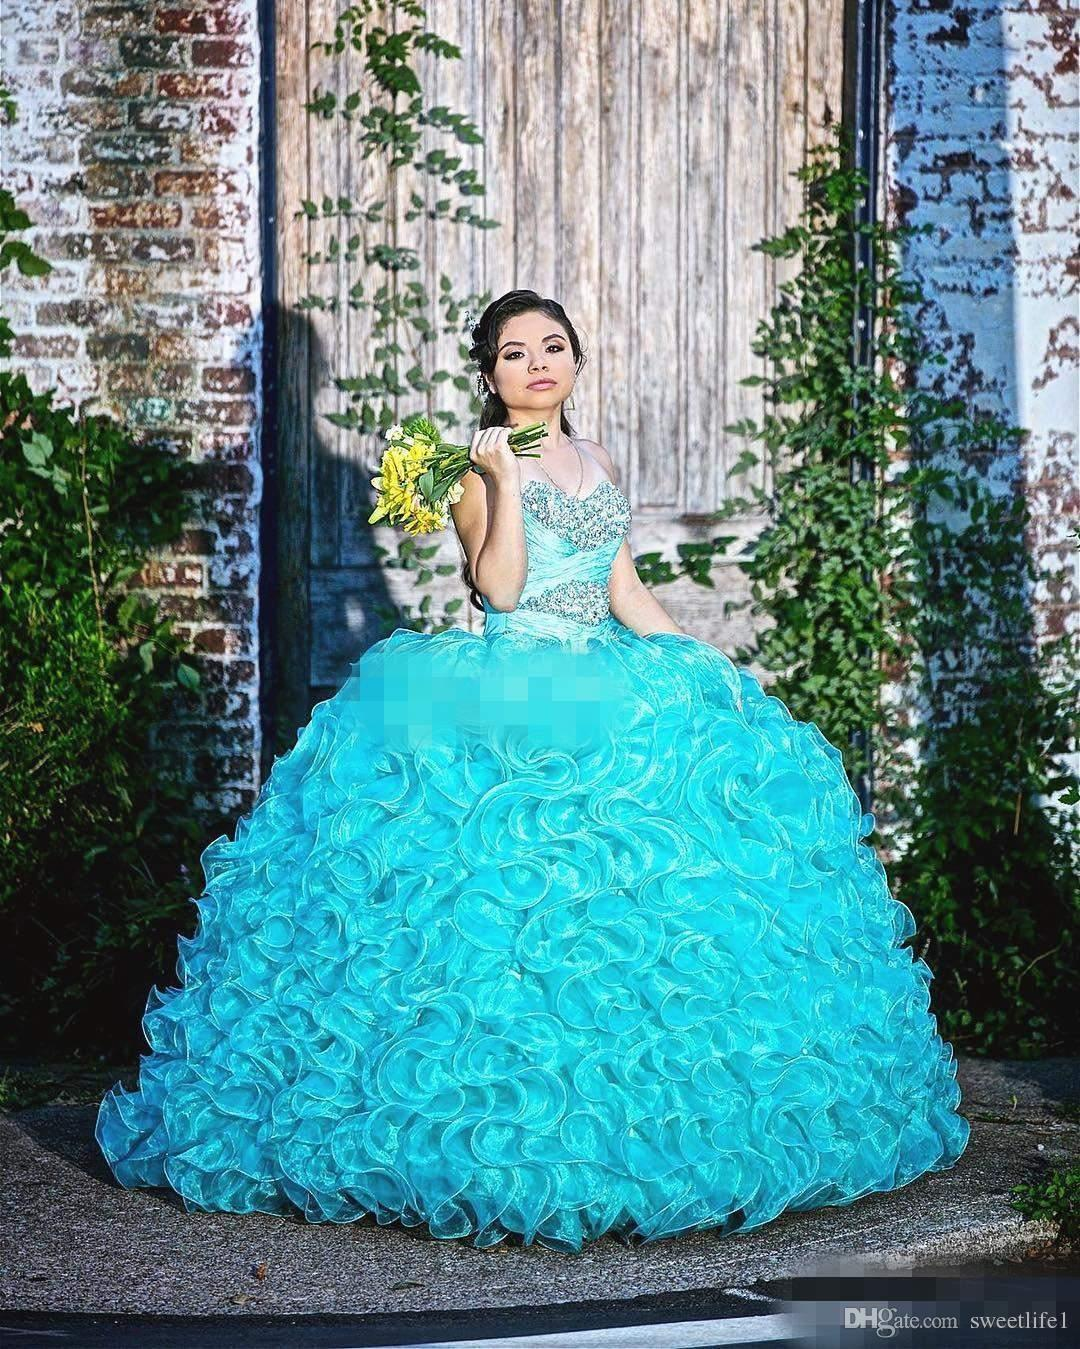 2019 Turquoise Sweet 16 Debuttanti Party Queen Dresses Sweetheart Crystals Beaded Ruffles Organza Corsetto Back Plus Size Abiti Quinceanera